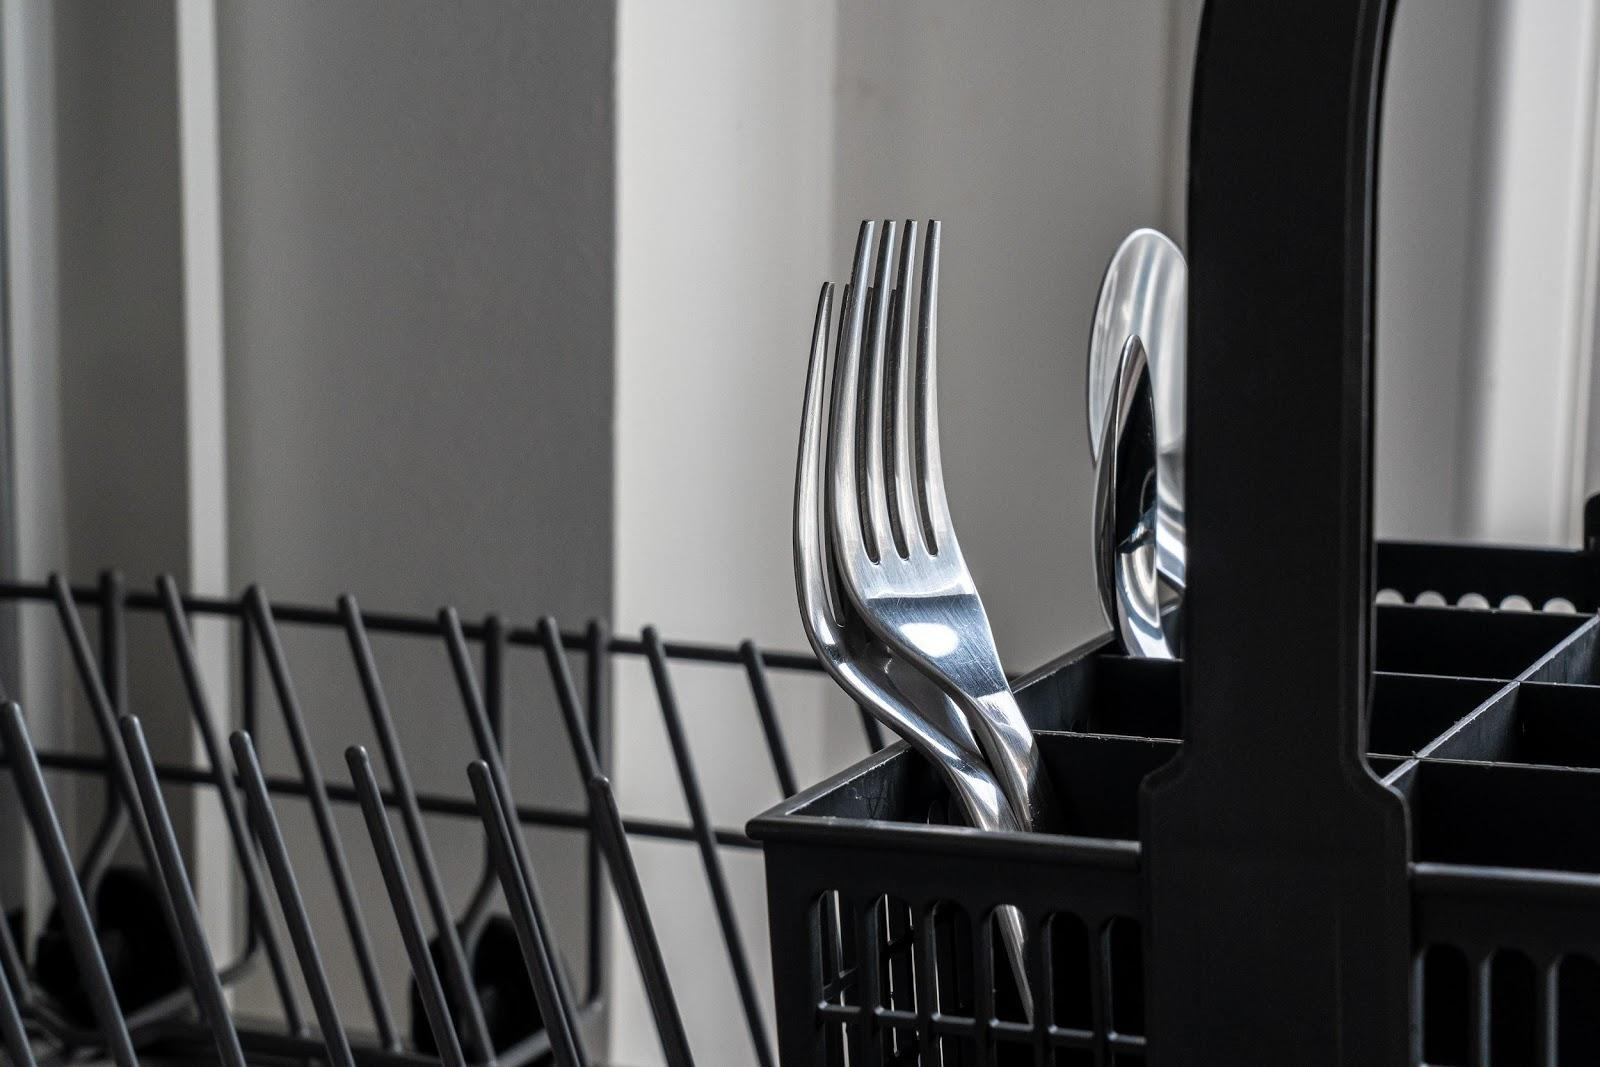 5 Tips On How To Prevent Your Dishwasher From Breaking